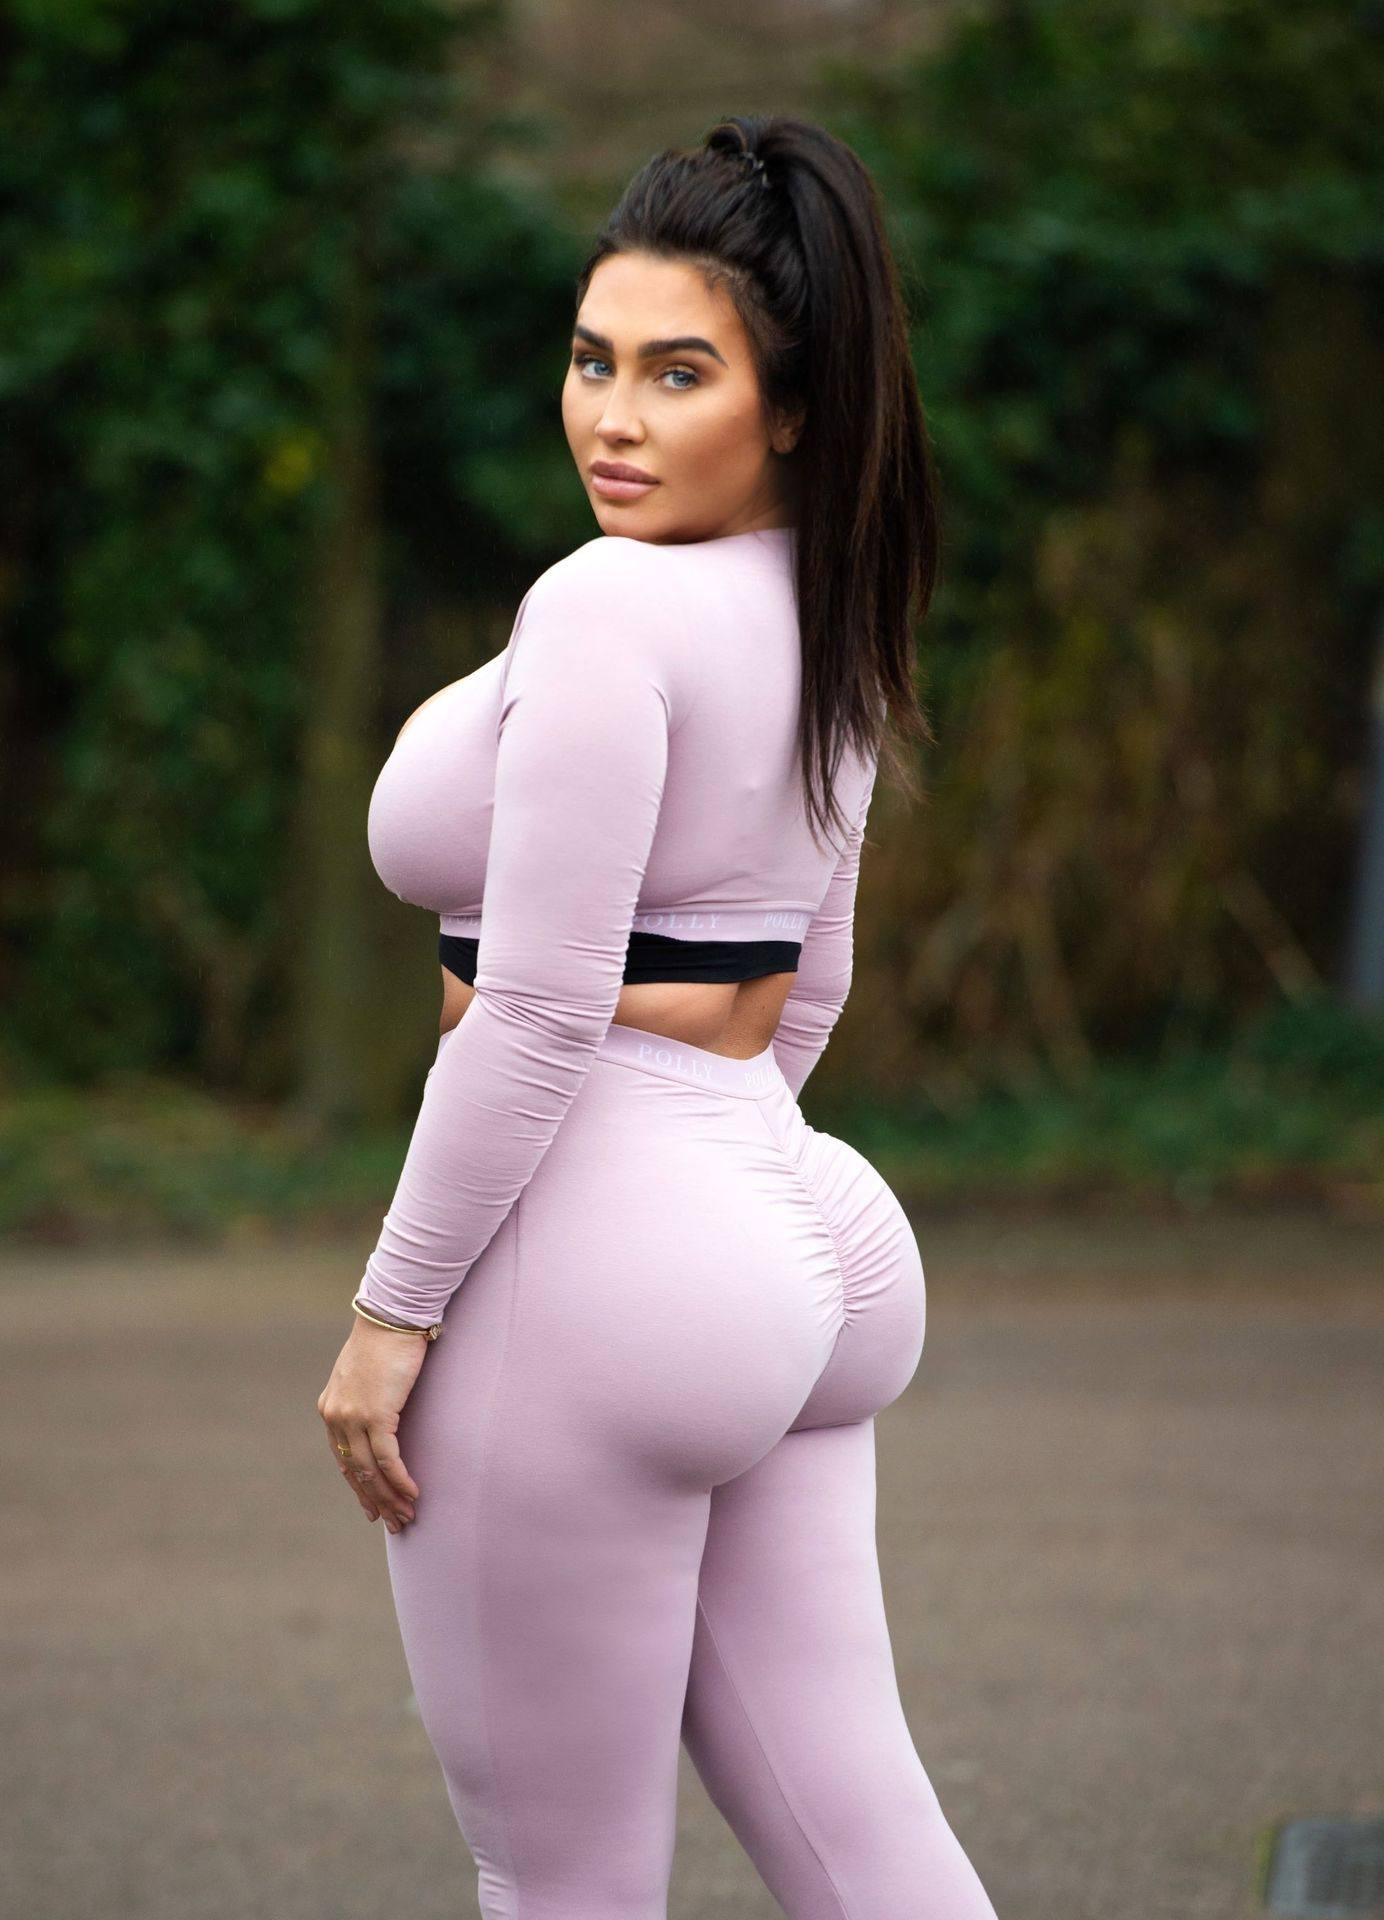 Lauren Goodger – Sexy Thick Body In Leggings And Revealing Top Out In Essex 0001